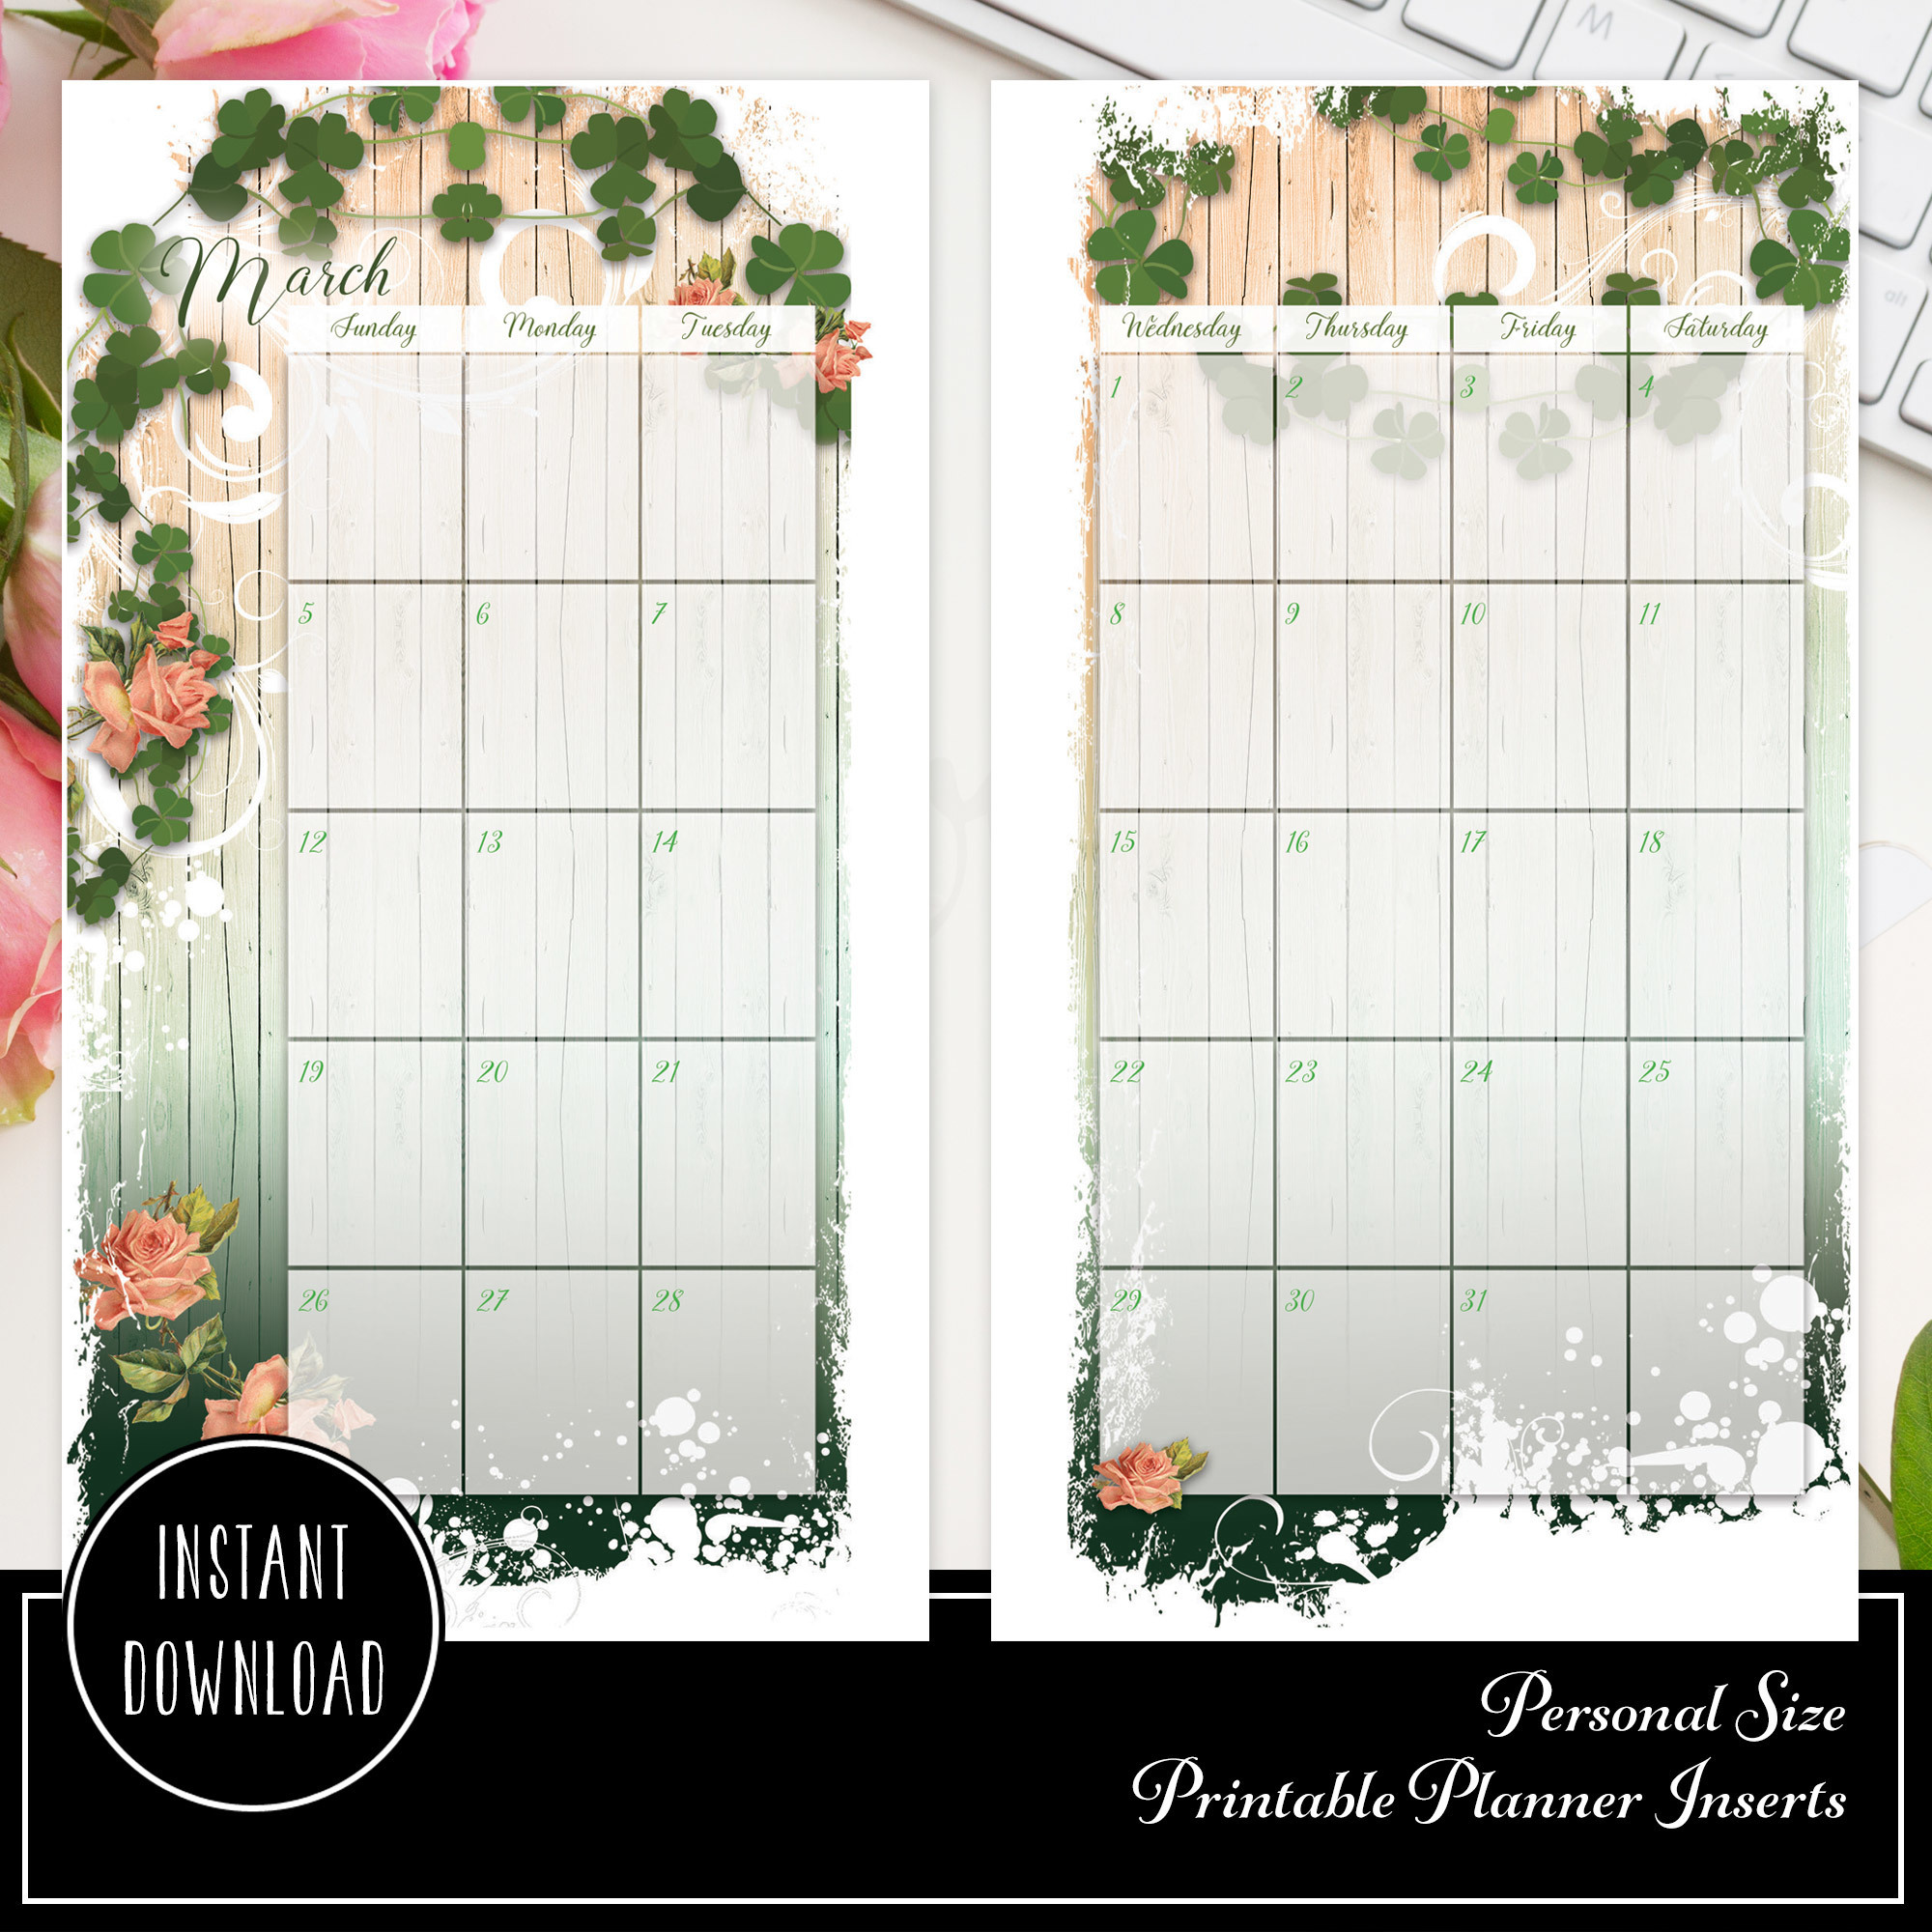 Lucky Wish  for Personal Size Printable Planner Insert 00202